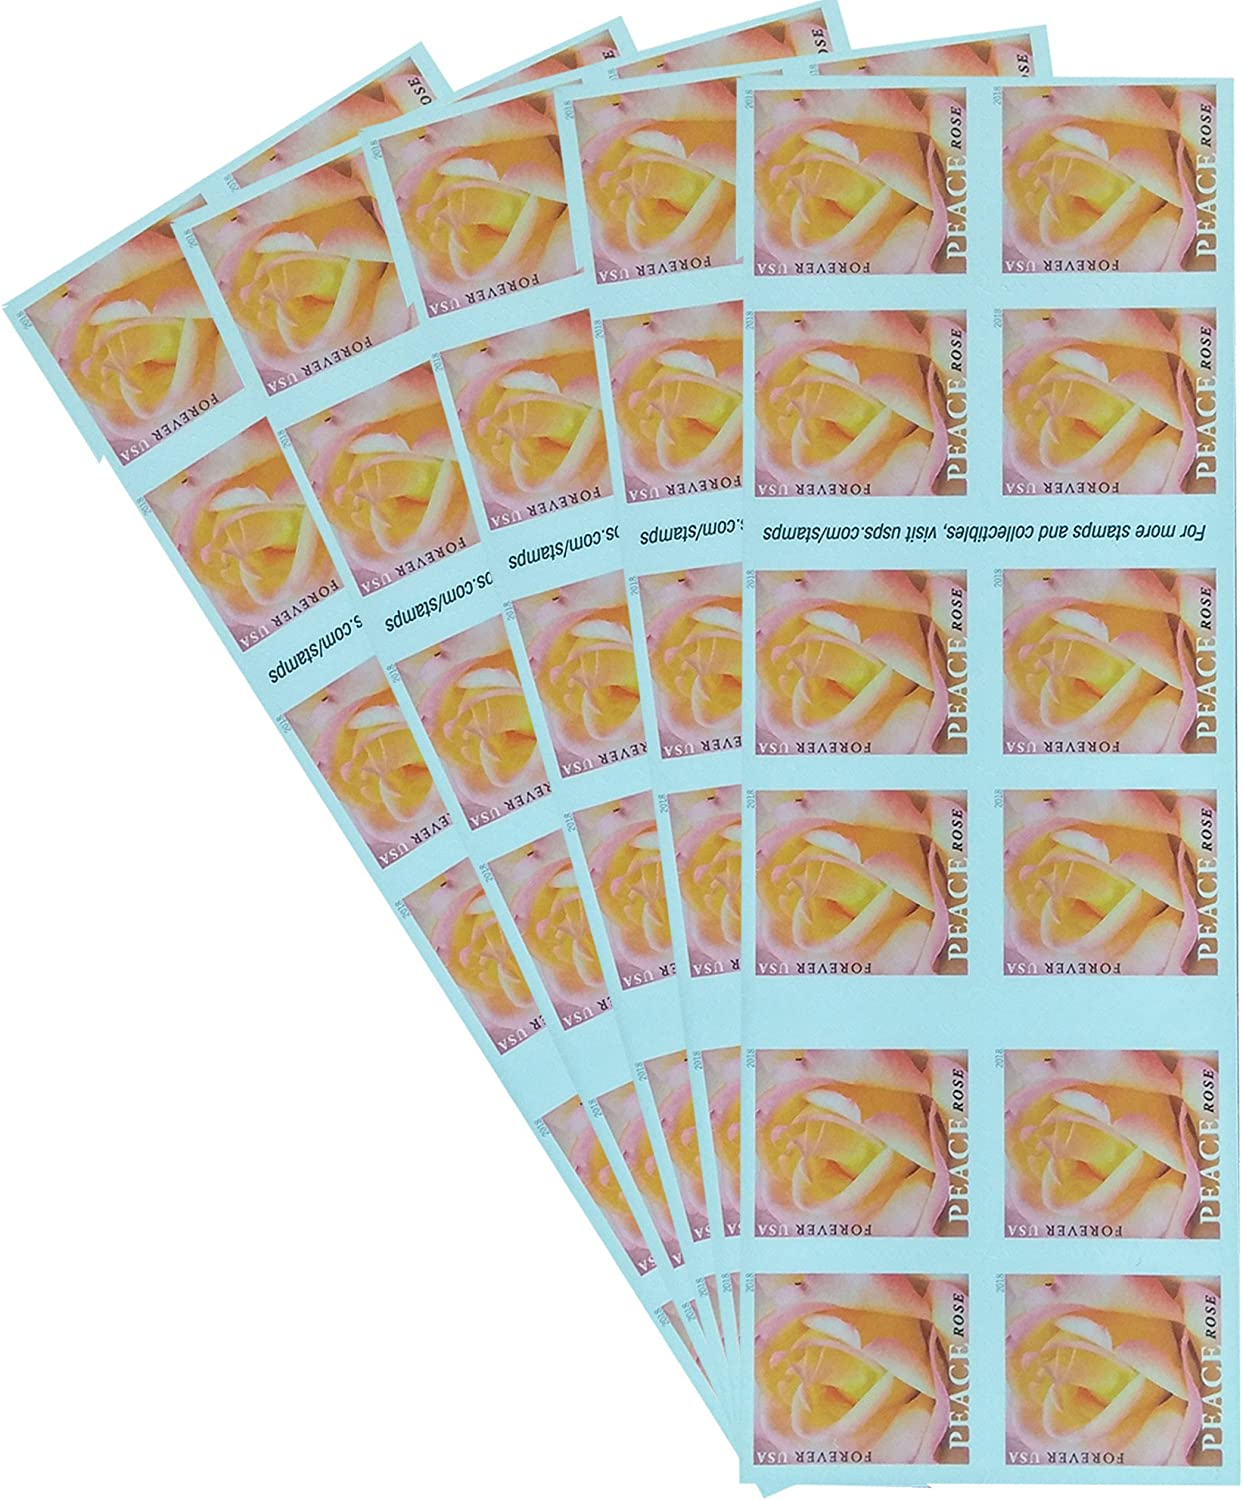 Peace Rose 5 Books of 20 Forever USPS Postage Stamp Wedding Engagement Celebration Love (100 Stamps)